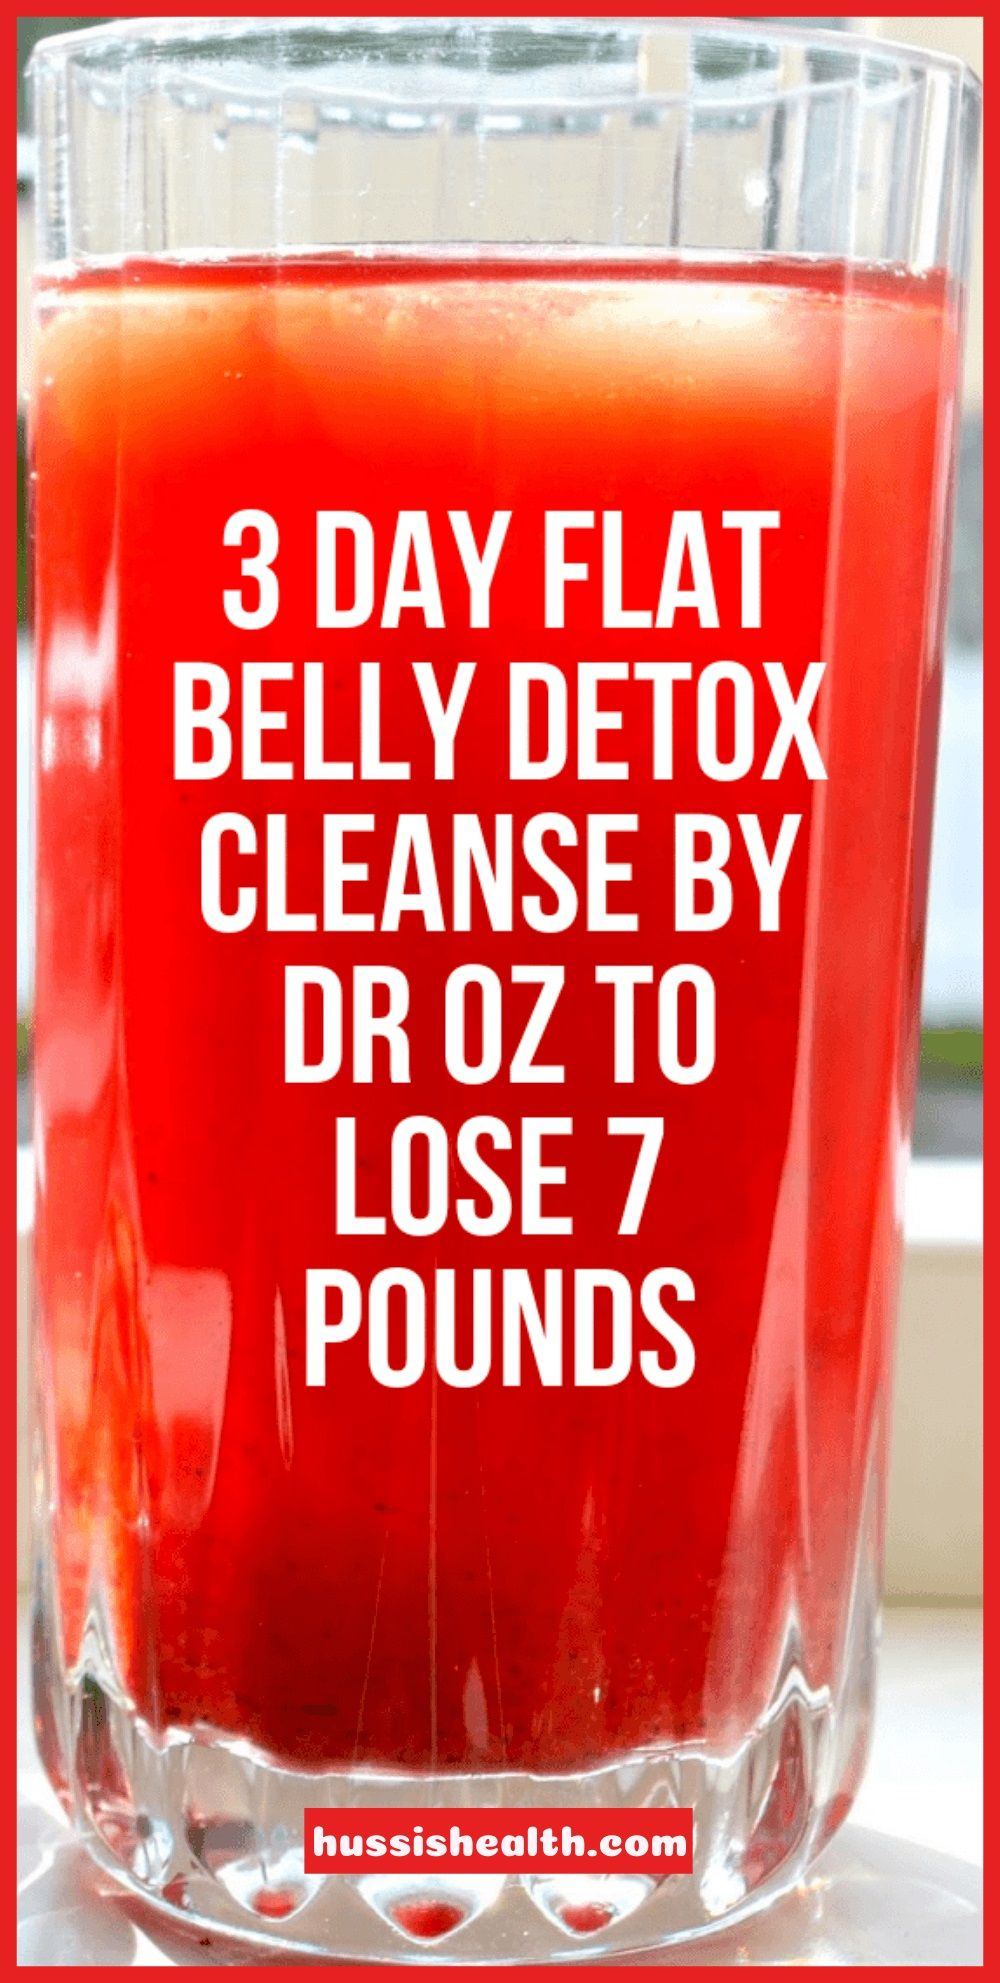 3 Day Flat Belly Detox Cleanse By Dr Oz To Lose 7 Pounds Hussis Detox Drinks Belly Detox Natural Detox